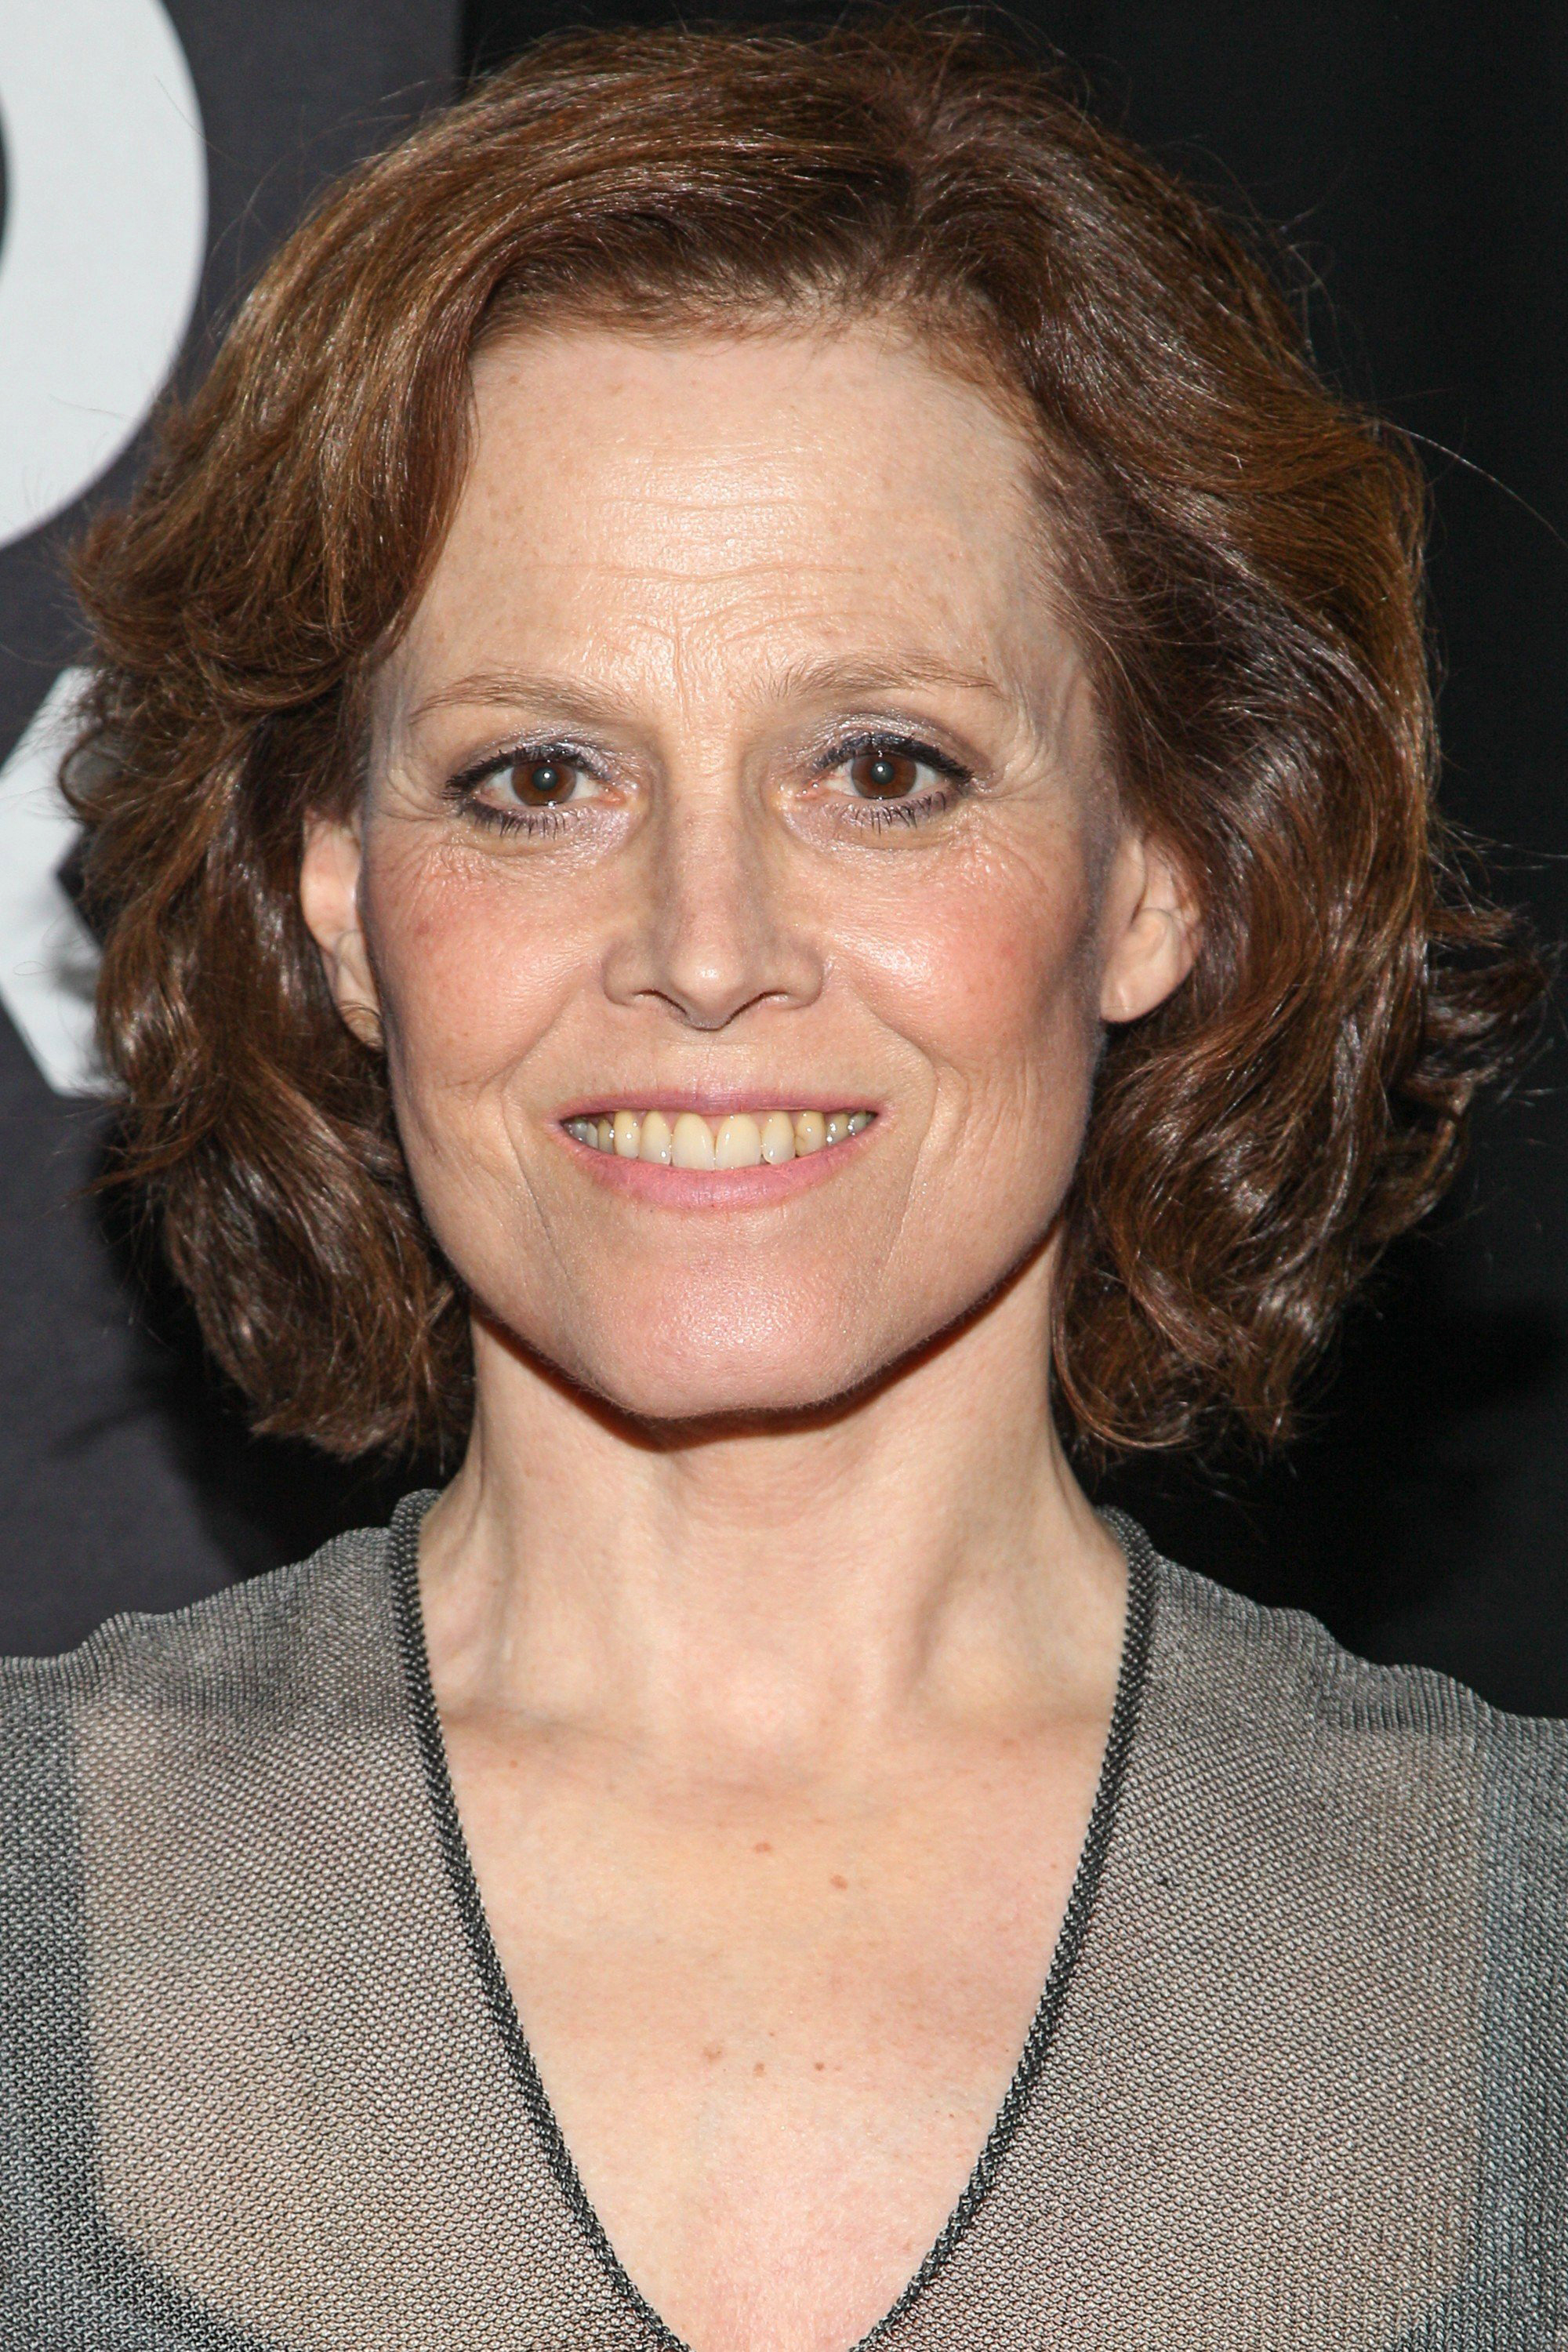 Sigourney Weaver attends the L.A. Times Hero Complex Film Festival 'Alien And Aliens' screening at TCL Chinese 6 Theatres on June 1, 2014 in Hollywood, Califor.